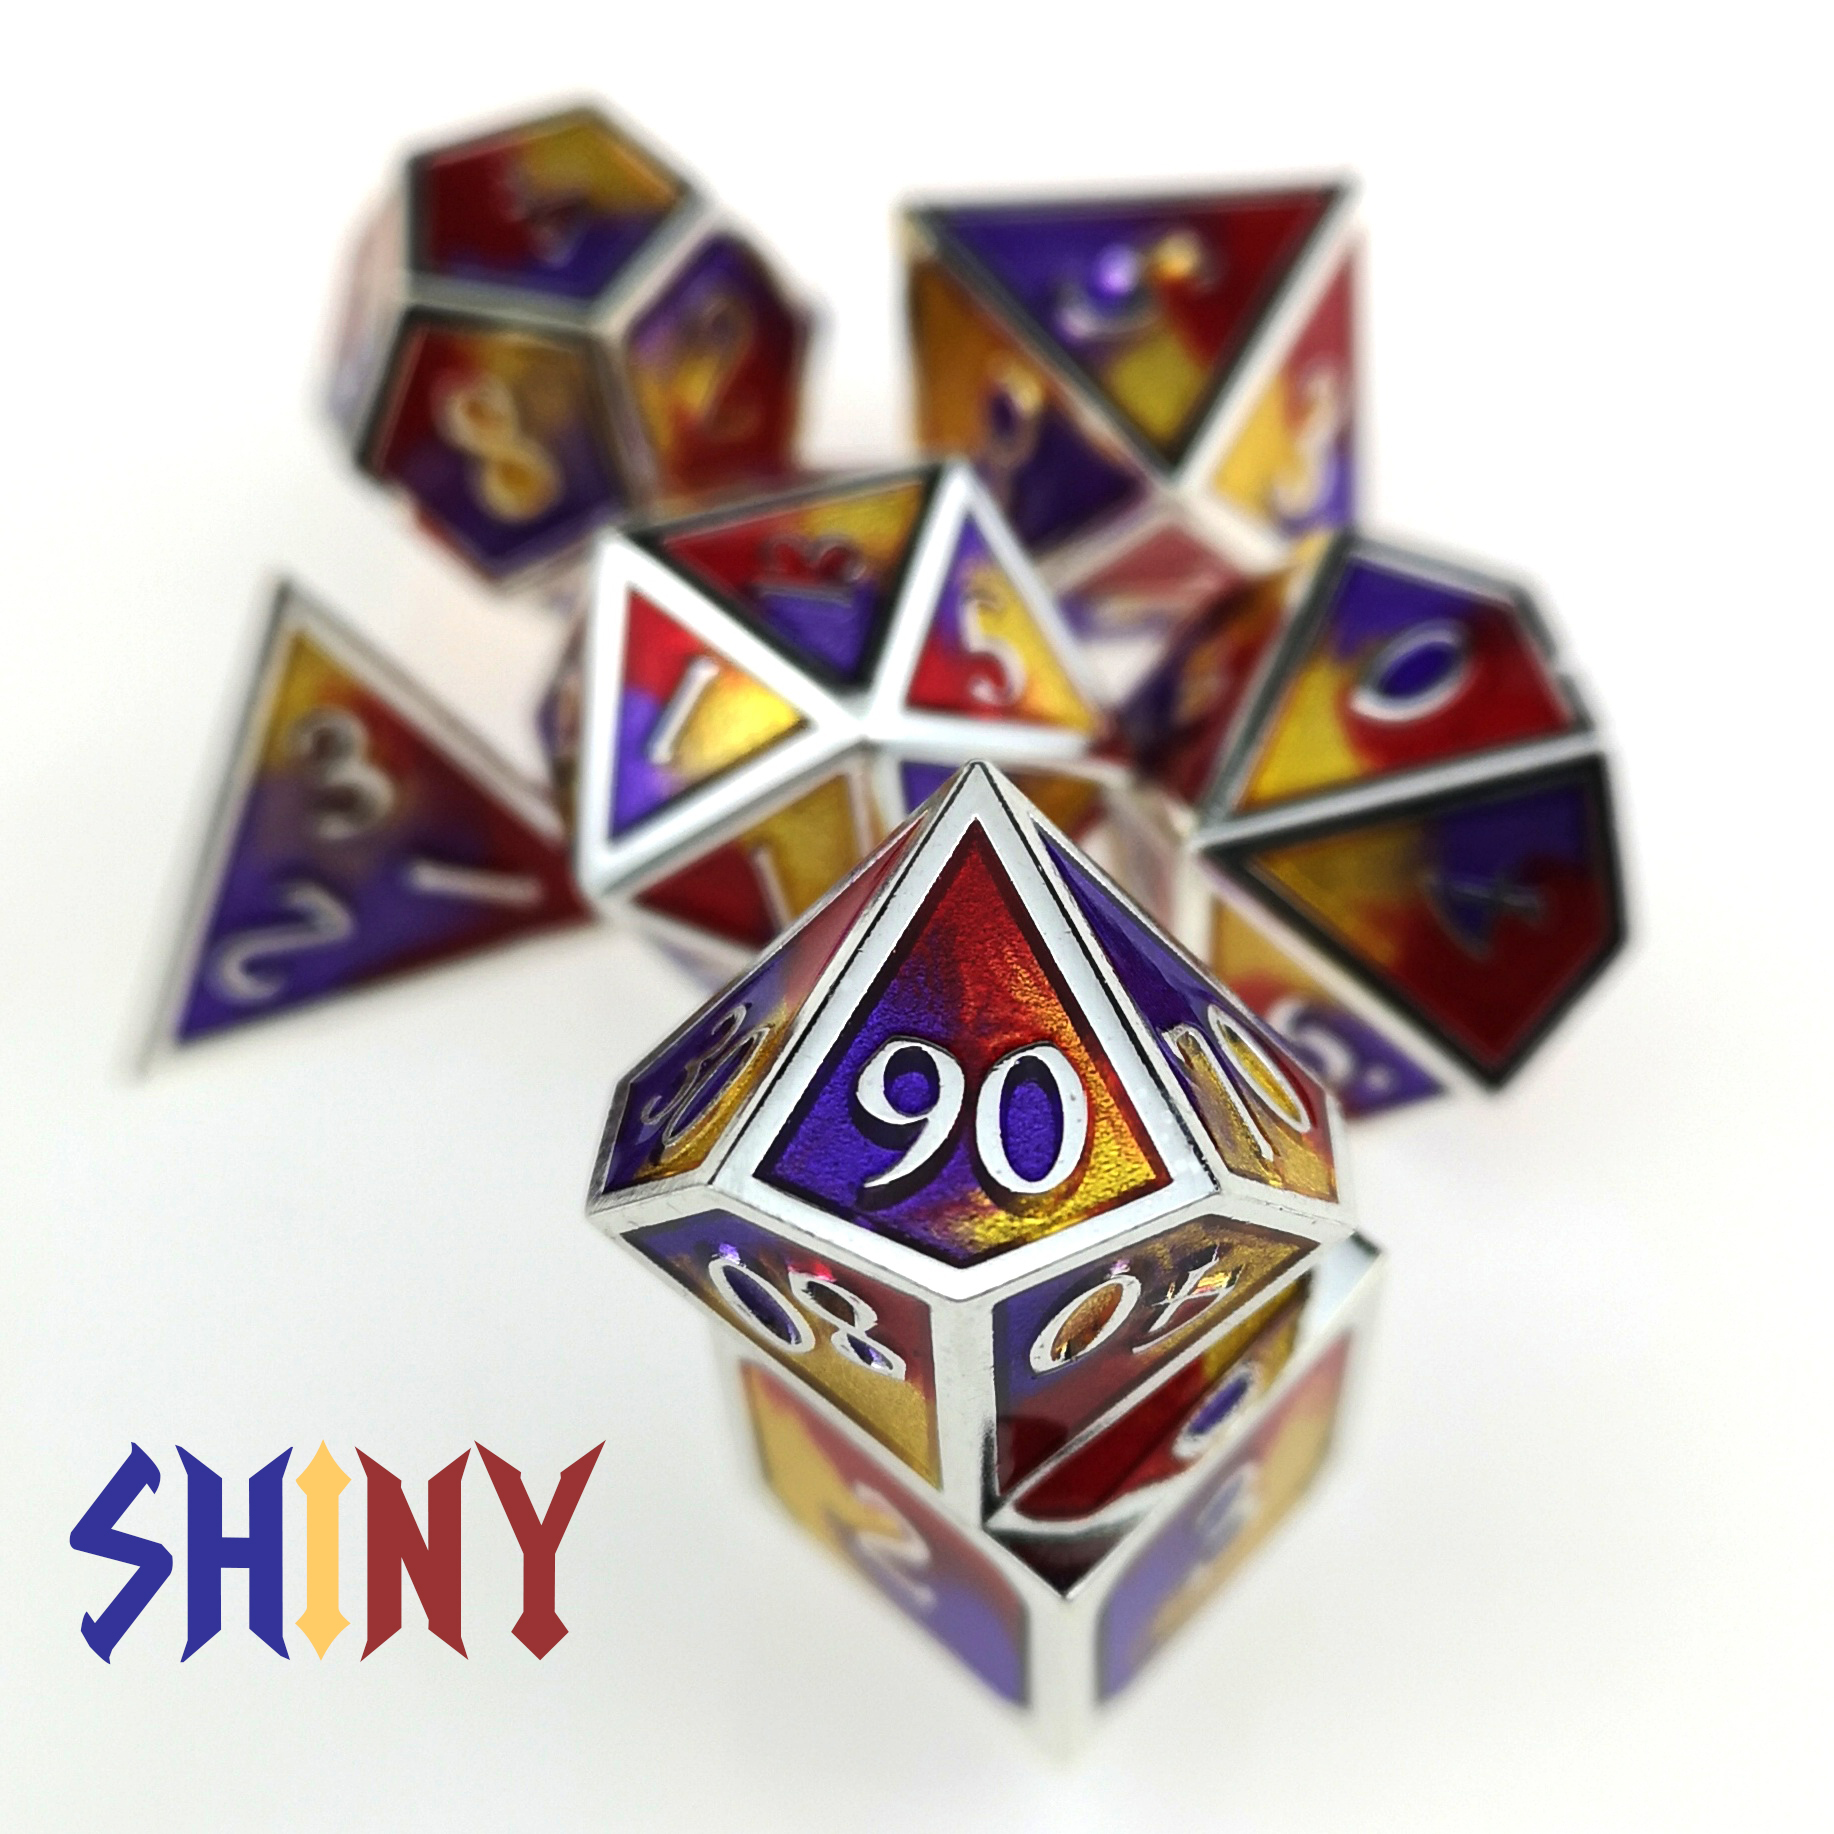 Rollooo DND <font><b>Metal</b></font> Dice Antique Copper 7-Die Set with Special Color & Font D4 D6 D8 D10 D% D12 <font><b>D20</b></font> for Role Playing Games image